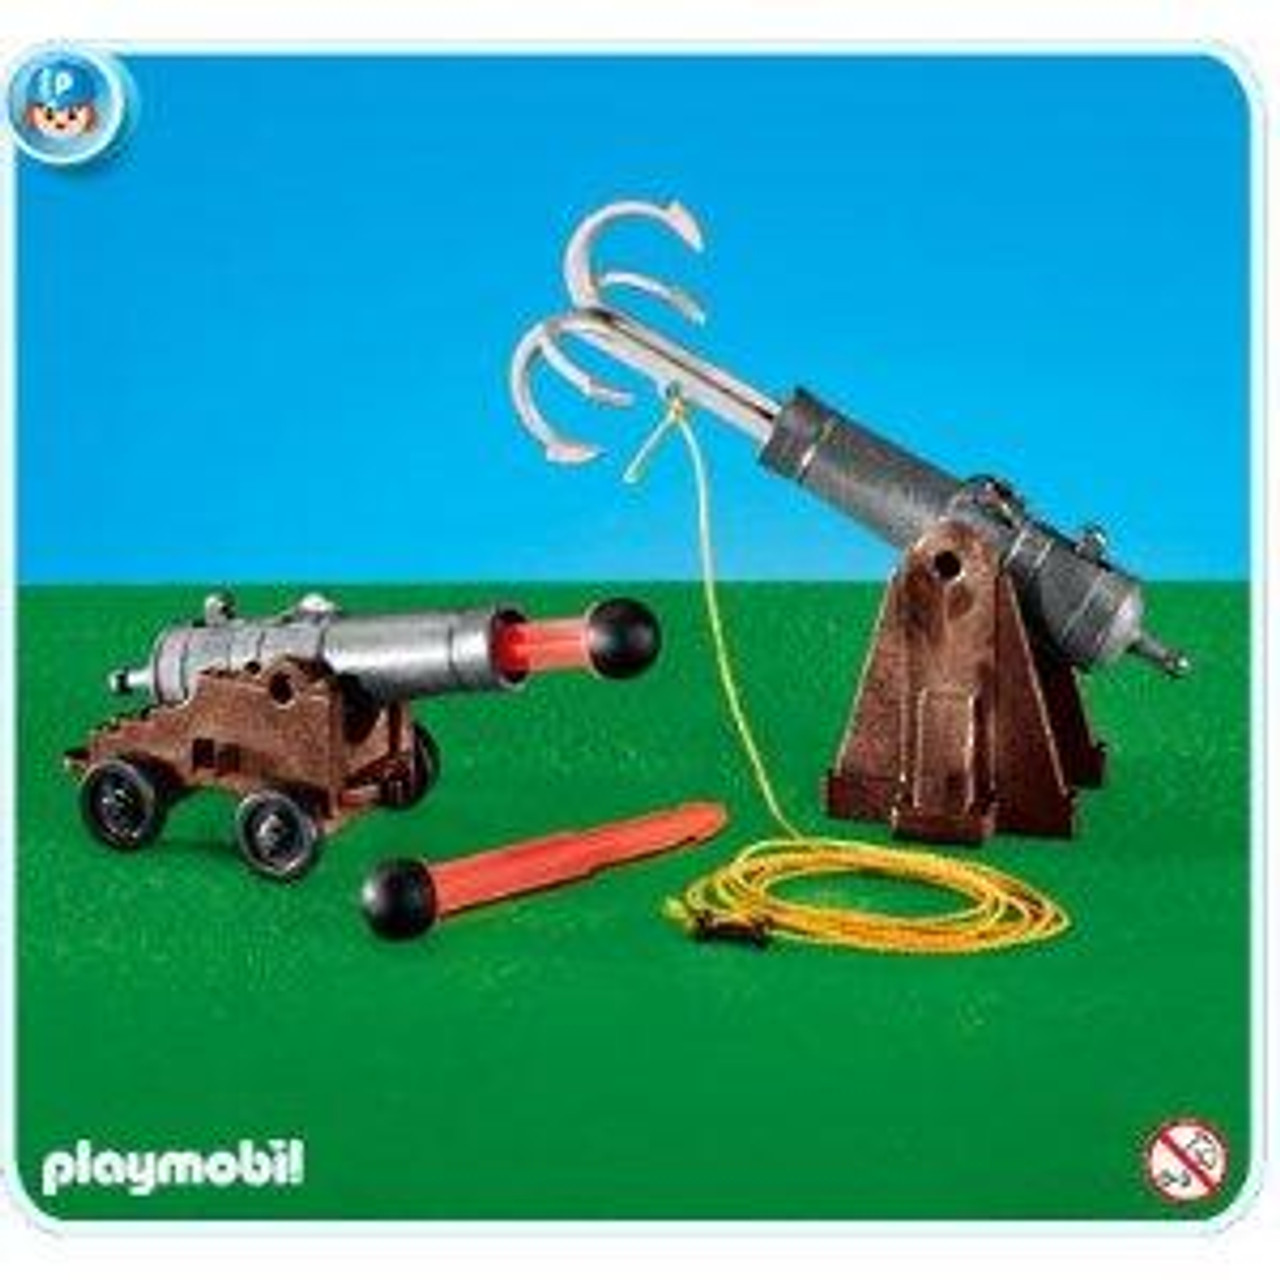 Playmobil Pirates Cannons for Pirate Ship Set #7373